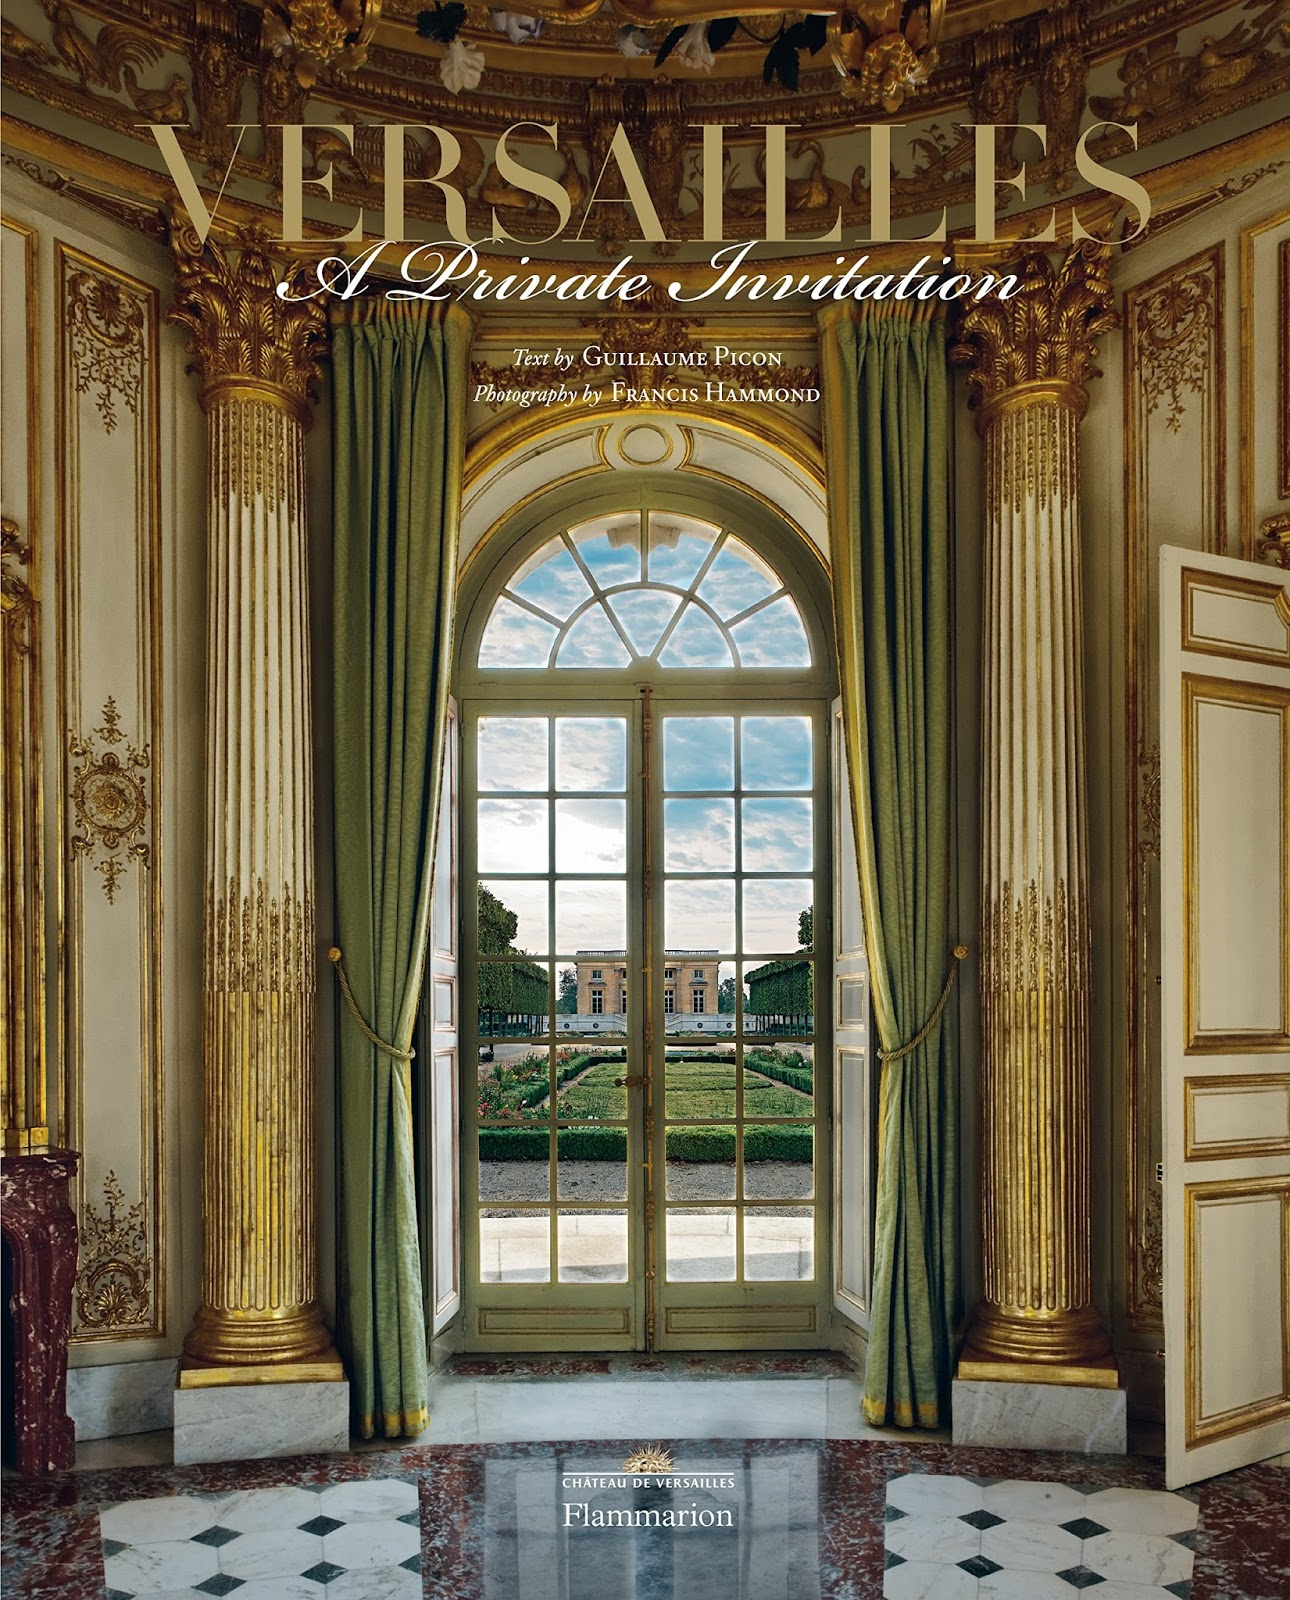 Color outside the lines book review versailles a private invitation book review versailles a private invitation stopboris Choice Image